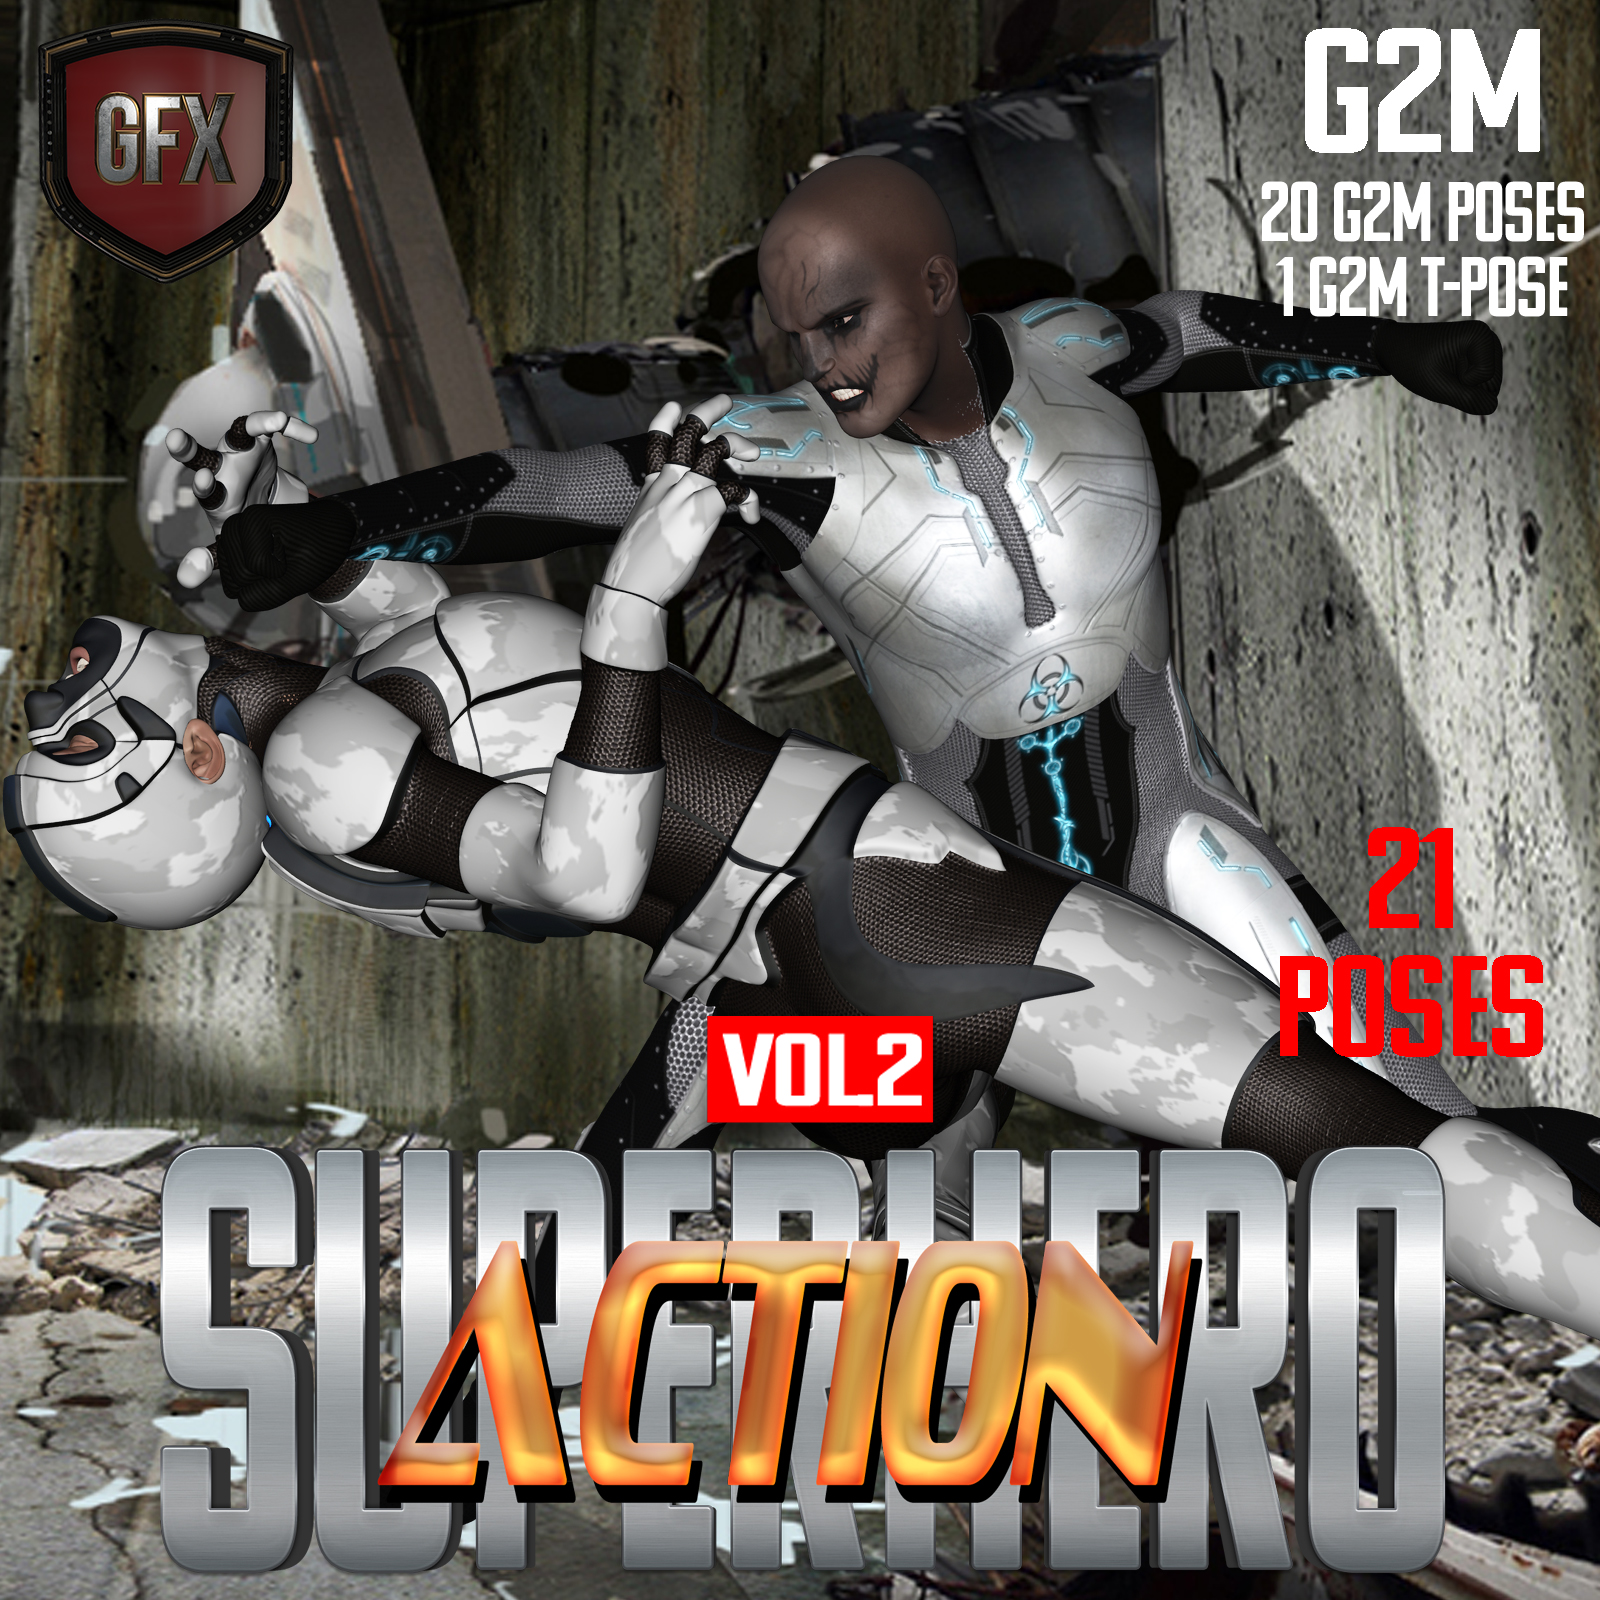 SuperHero Action for G2M Volume 2 by GriffinFX